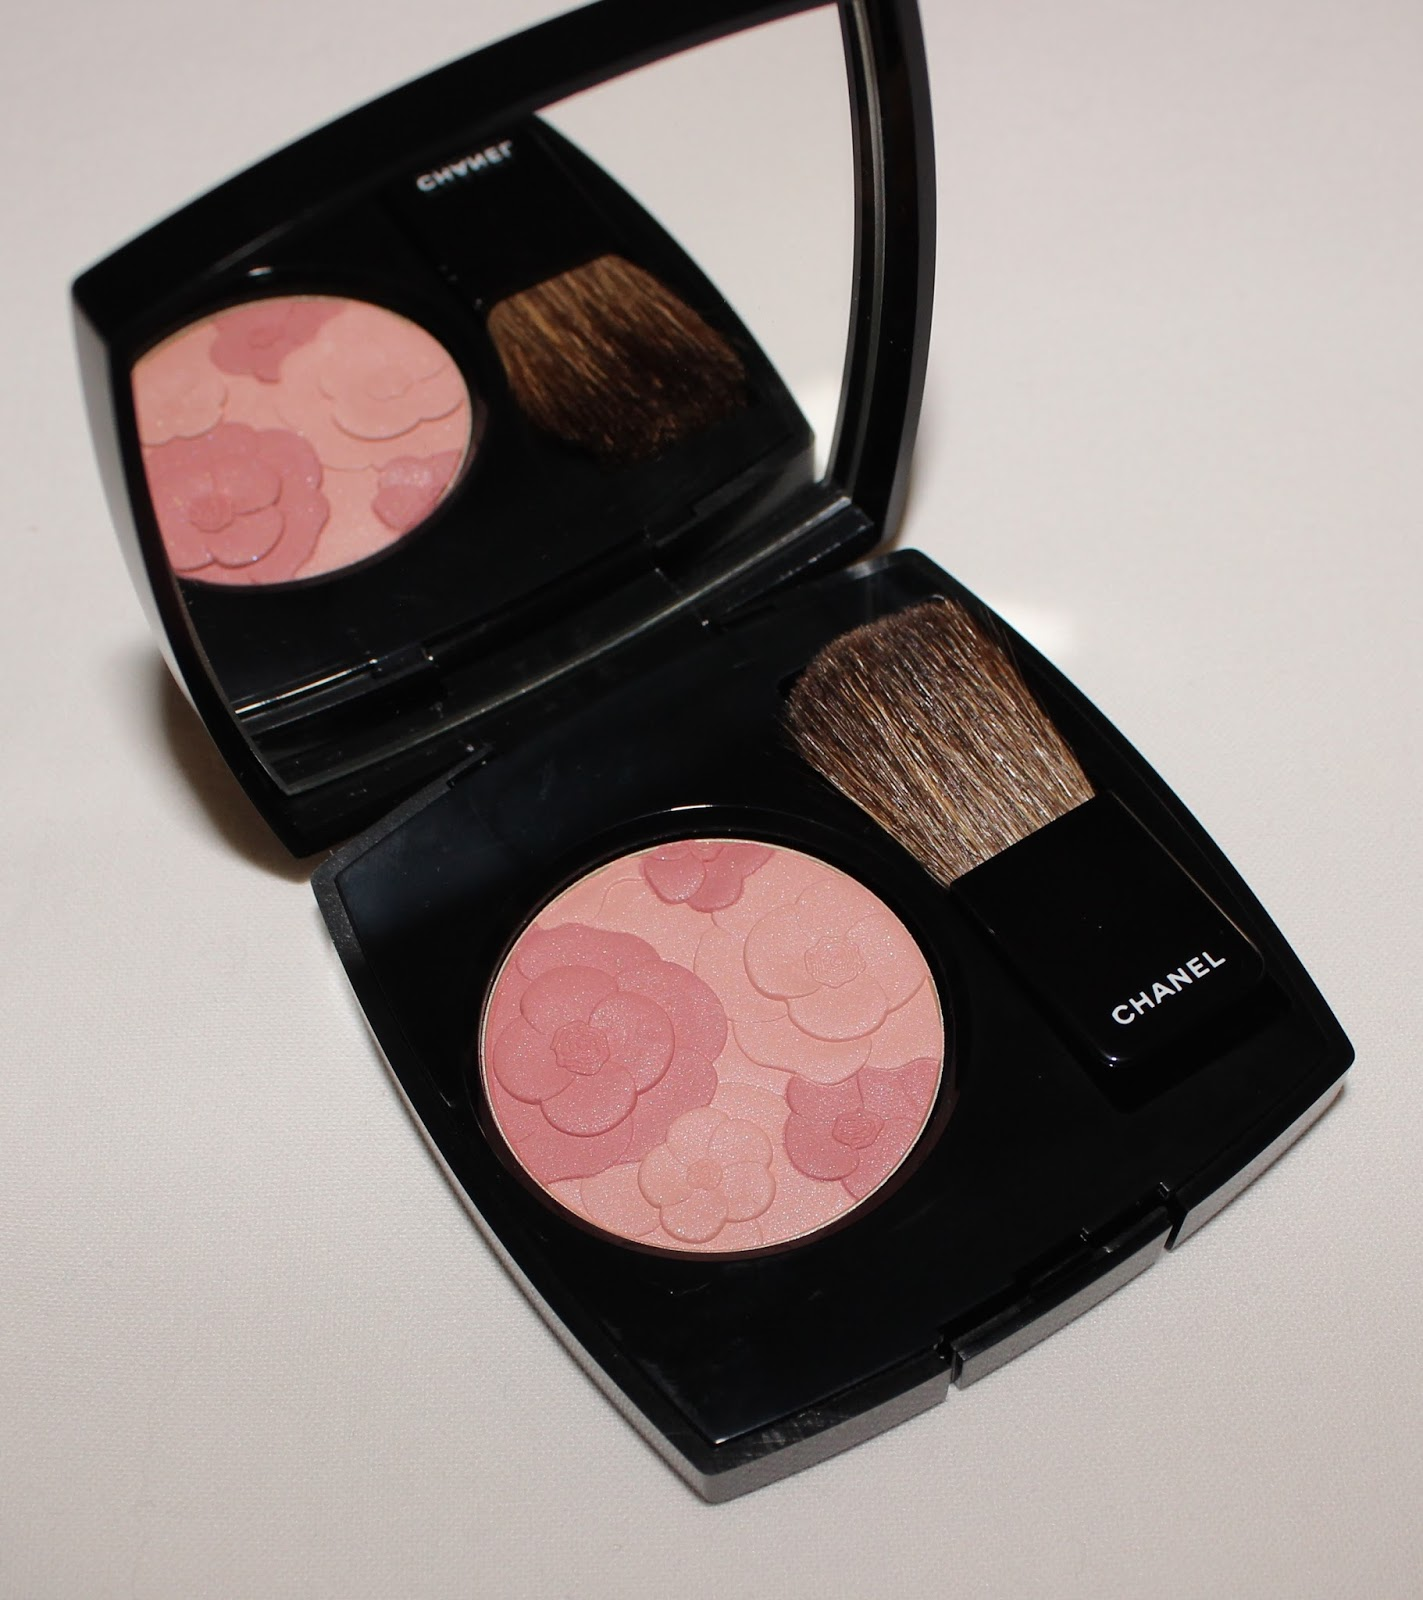 Luxury on the lips chanel reverie parisienne collection for Jardin de chanel blush 2015 kaufen